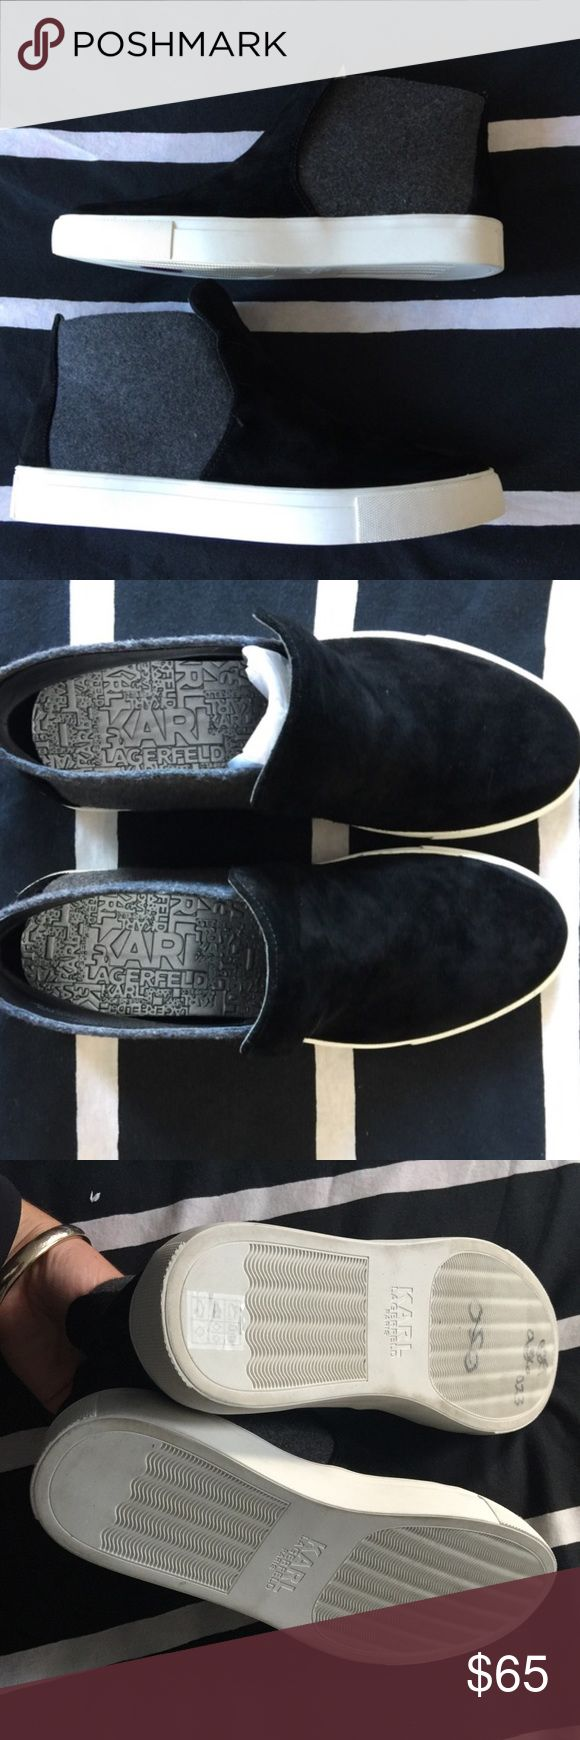 NEW KARL LAGERFELD CHUKKAS NWOT!! These are unreal shoes ! Designer for an awesome price! Found on clearance and couldn't resist! Karl Lagerfeld Shoes Sneakers